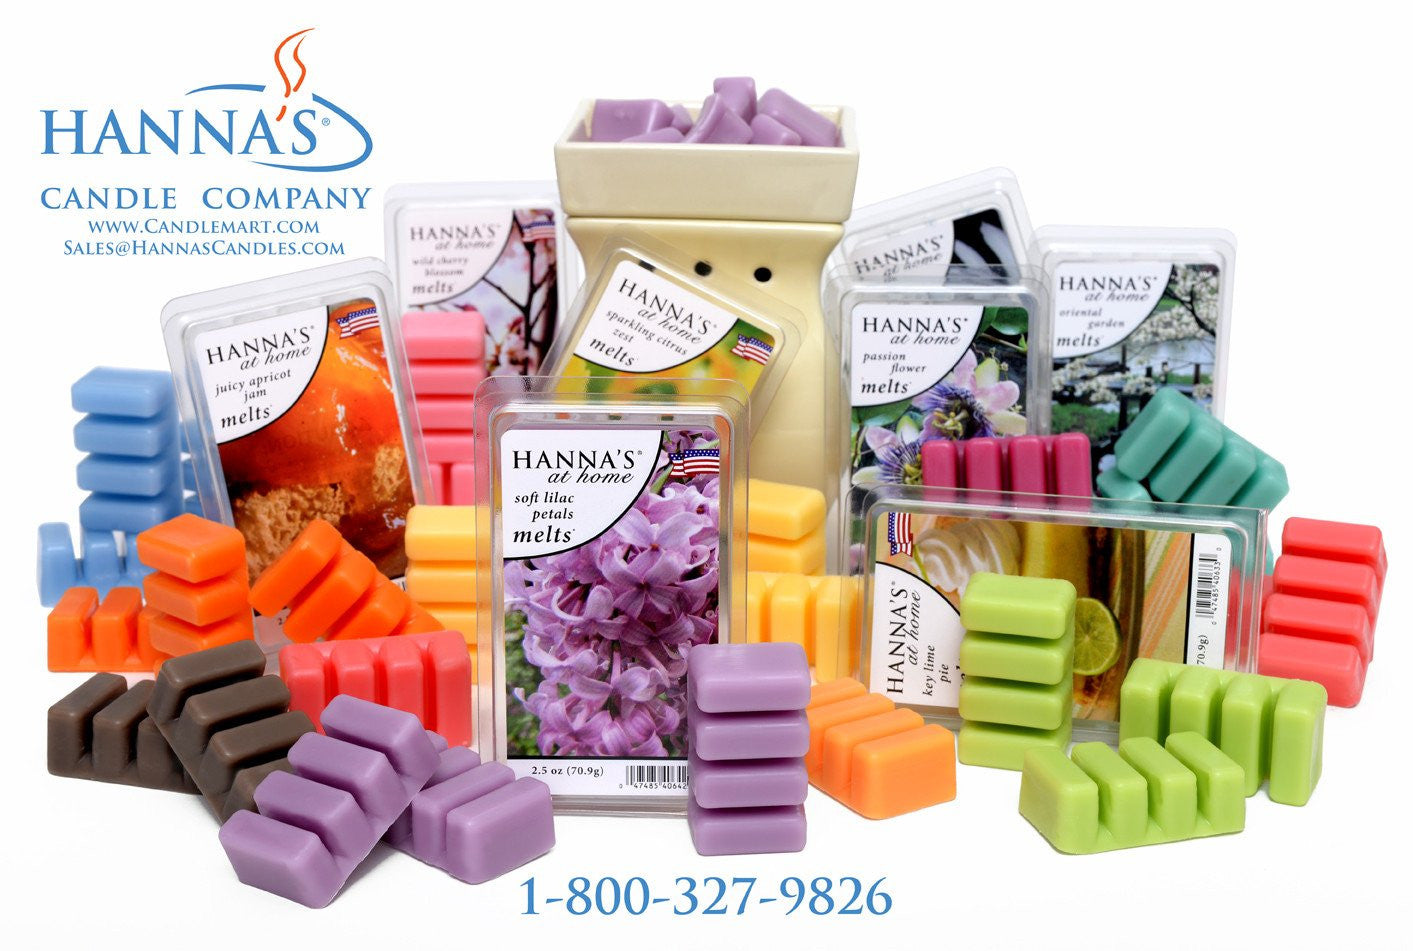 Black Sands Scented Wax Melts Melts Candlemart.com $ 2.49